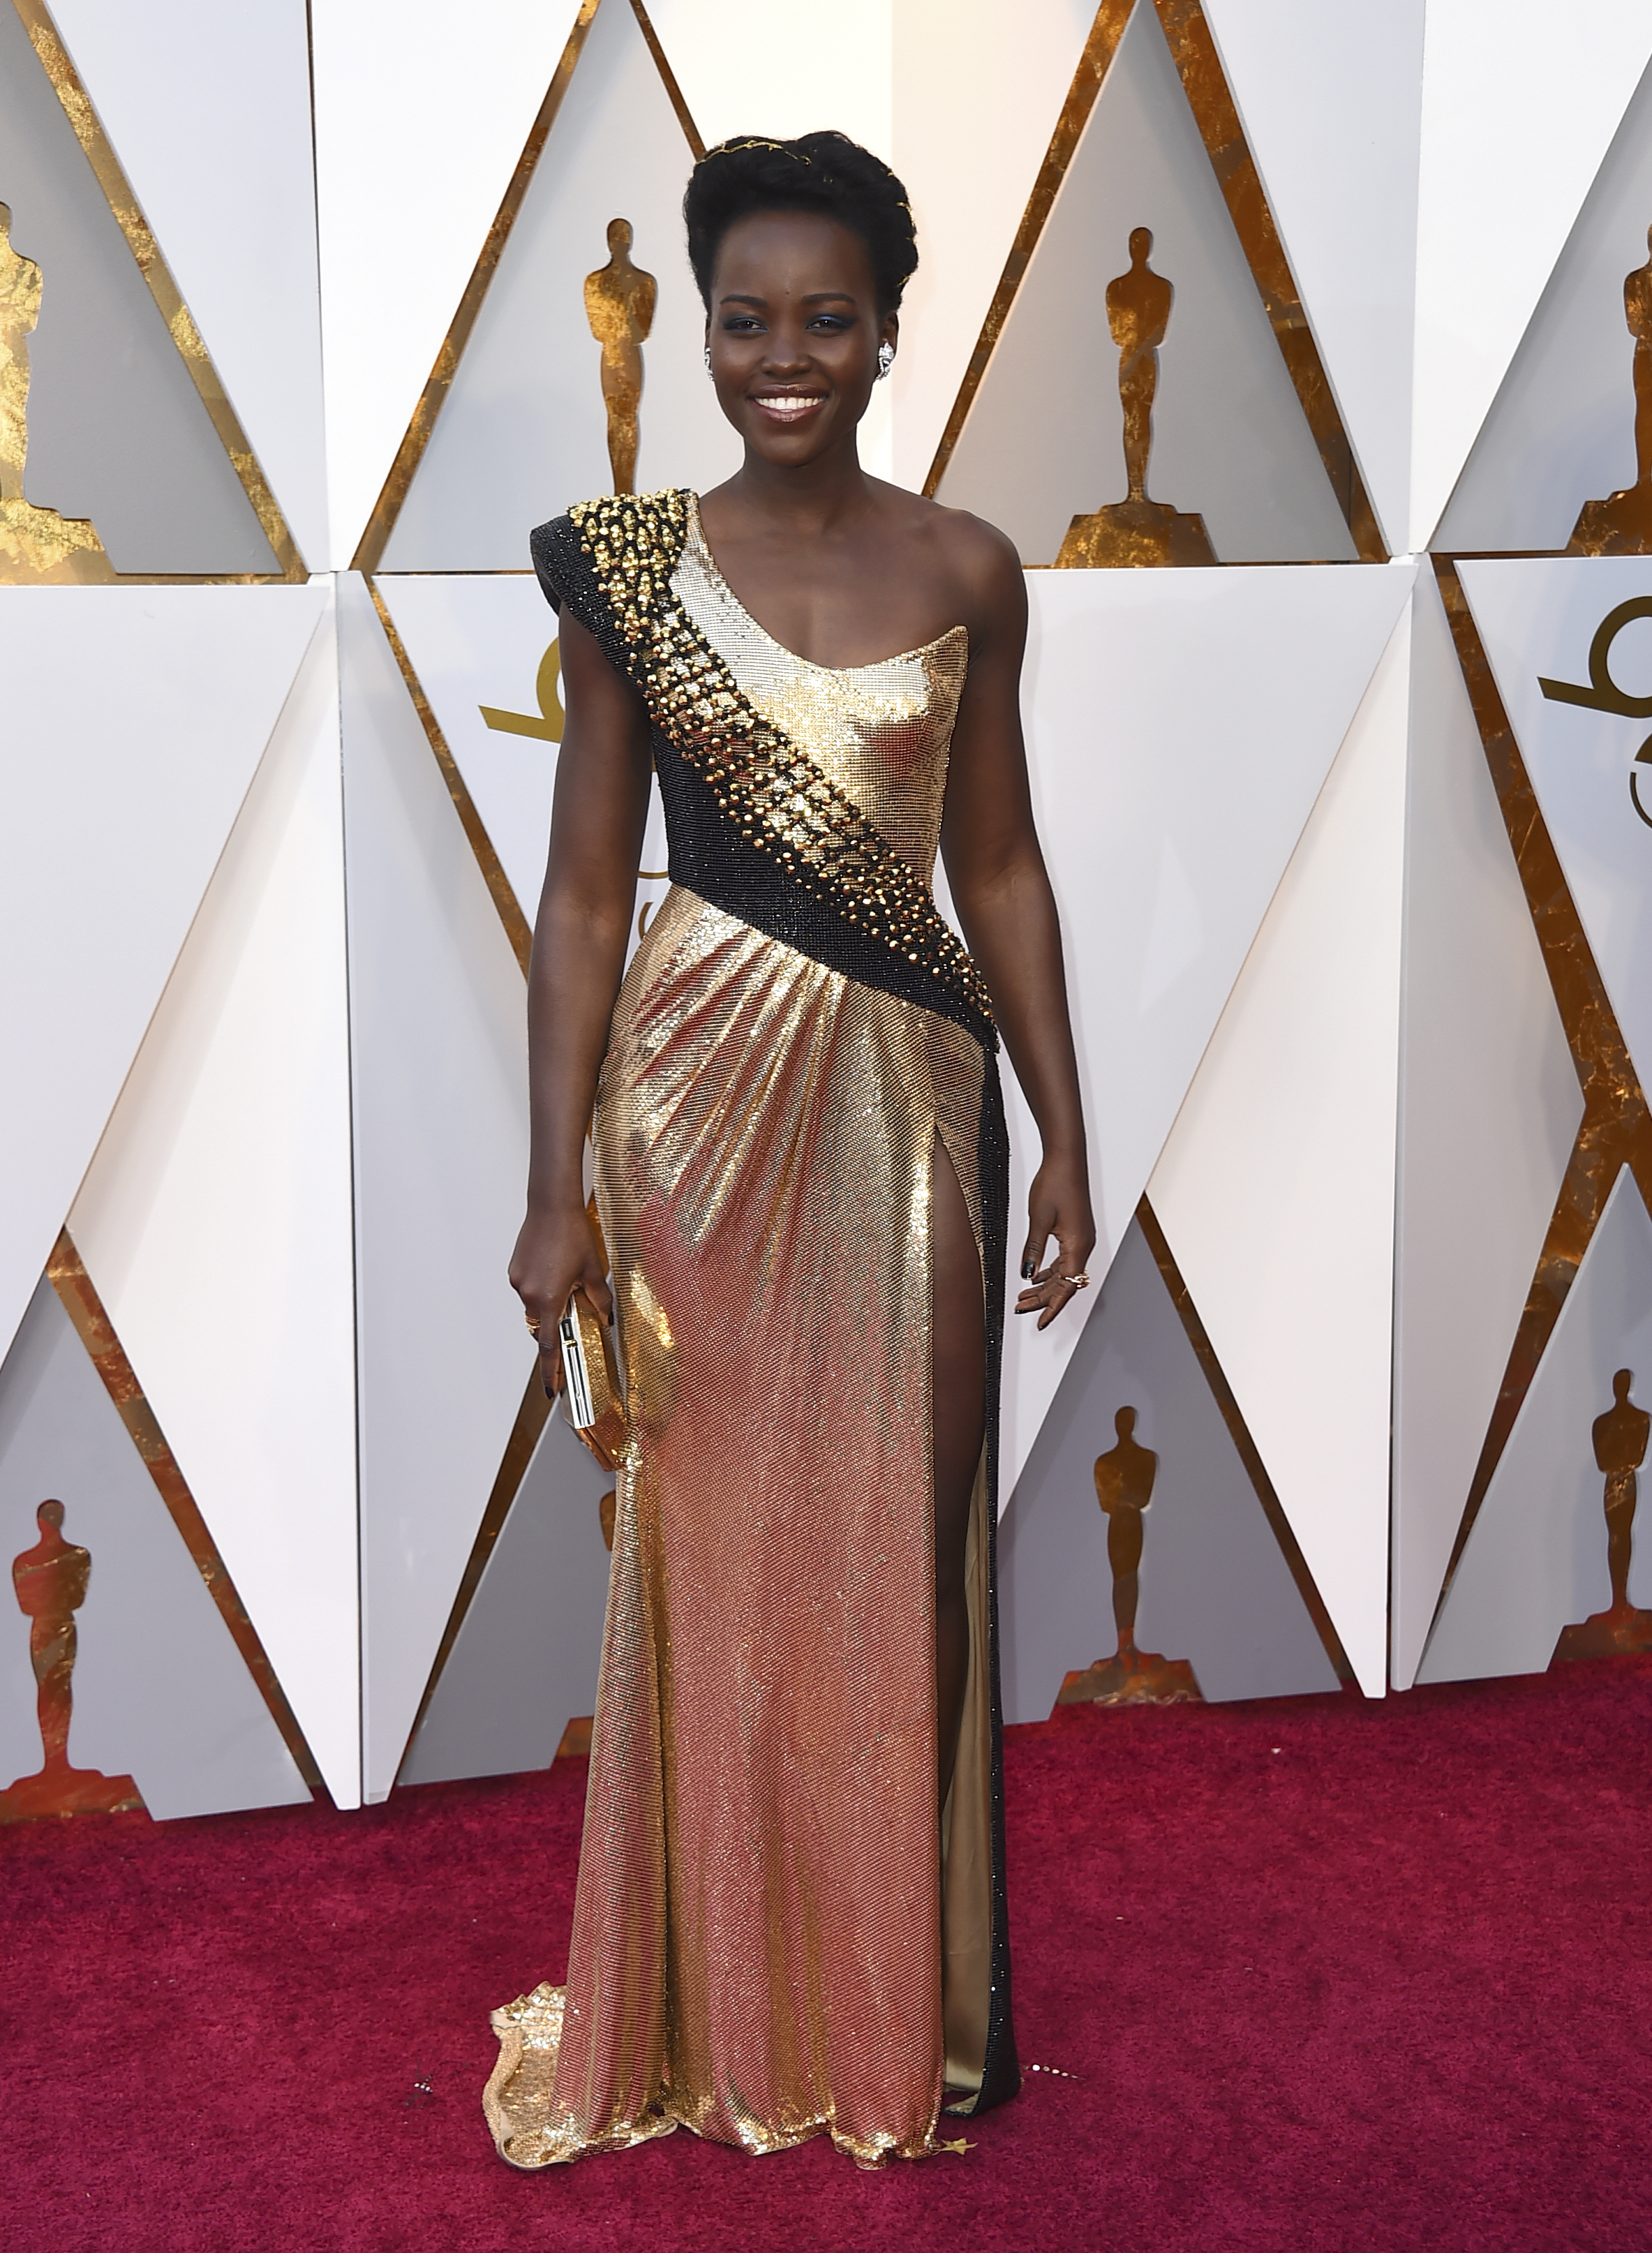 <div class='meta'><div class='origin-logo' data-origin='none'></div><span class='caption-text' data-credit='Jordan Strauss/Invision/AP'>Previous Oscar winner Lupita Nyong'o arrives at the Oscars on Sunday, March 4, 2018, at the Dolby Theatre in Los Angeles.</span></div>